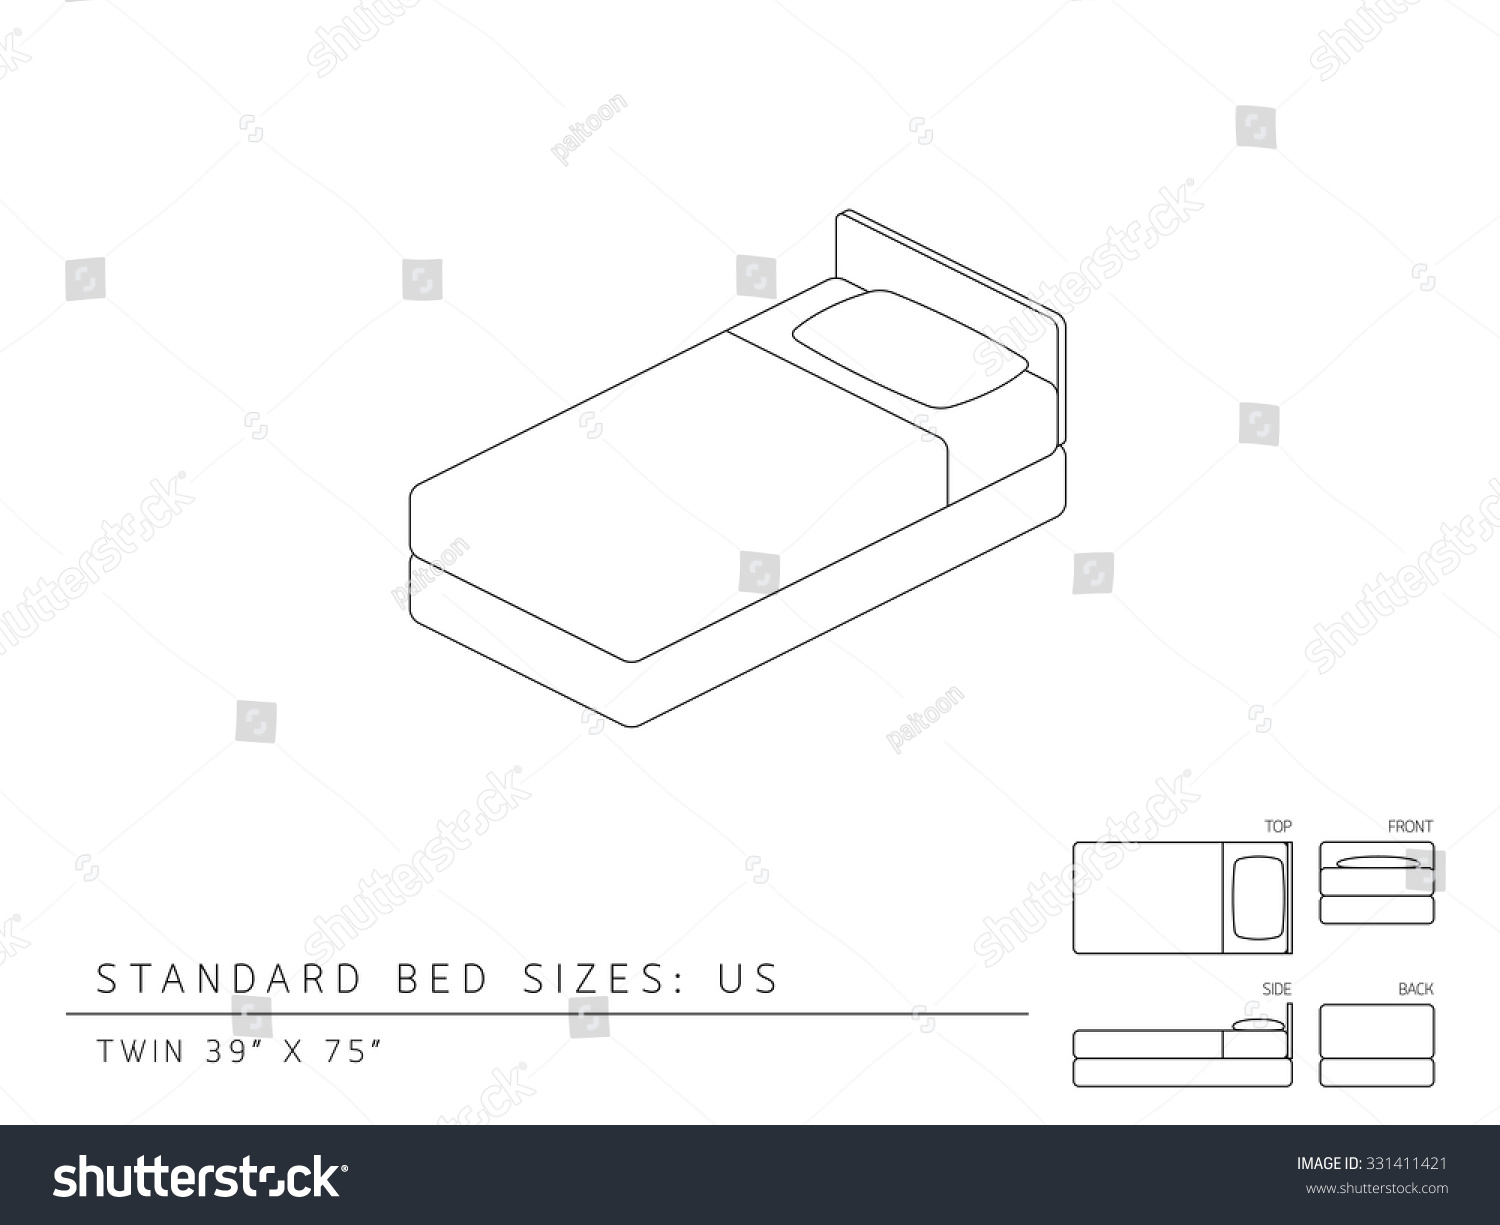 Standard Bed Sizes Us United States Stock Vector 331411421 ...